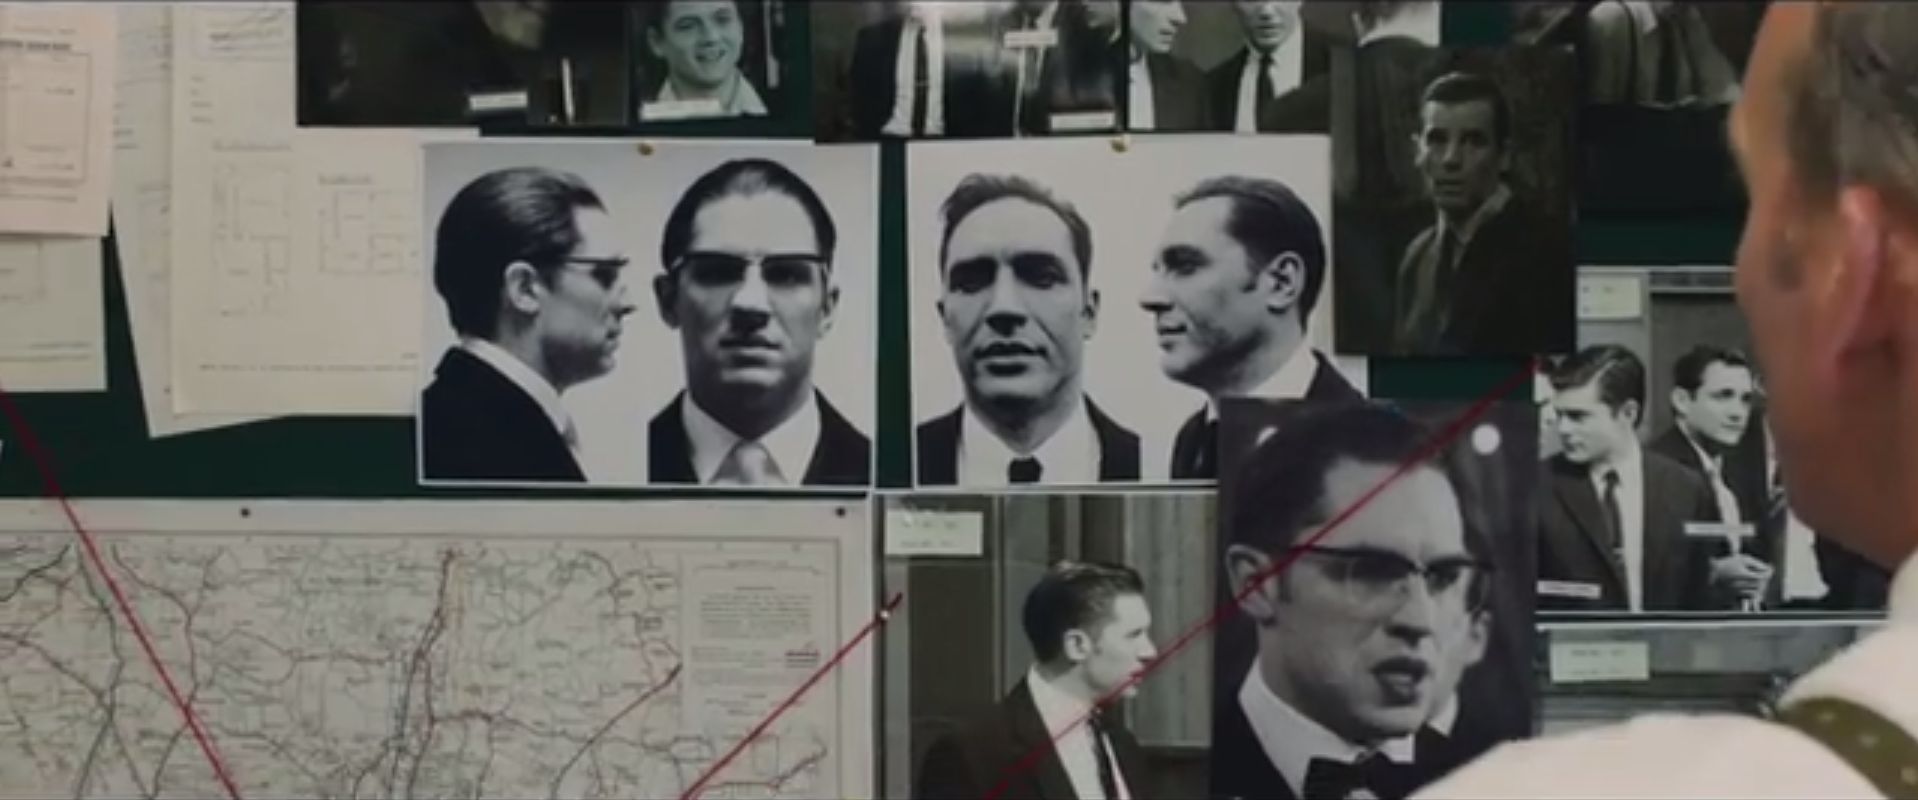 Watch : 'Legend' Teaser Trailer Starring Tom Hardy As Kray Twins